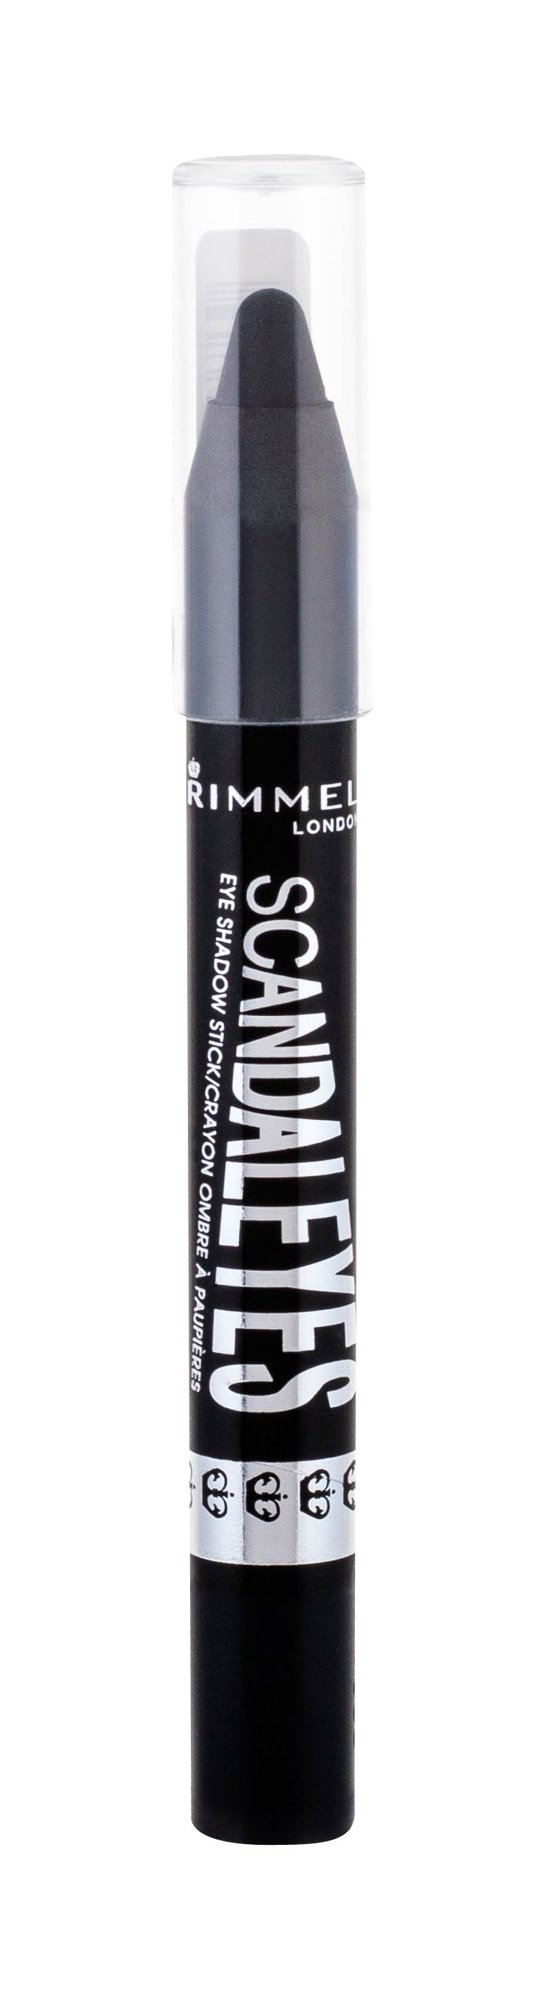 Rimmel London Scandal Eyes Cosmetic 3,25ml 008 Blackmail